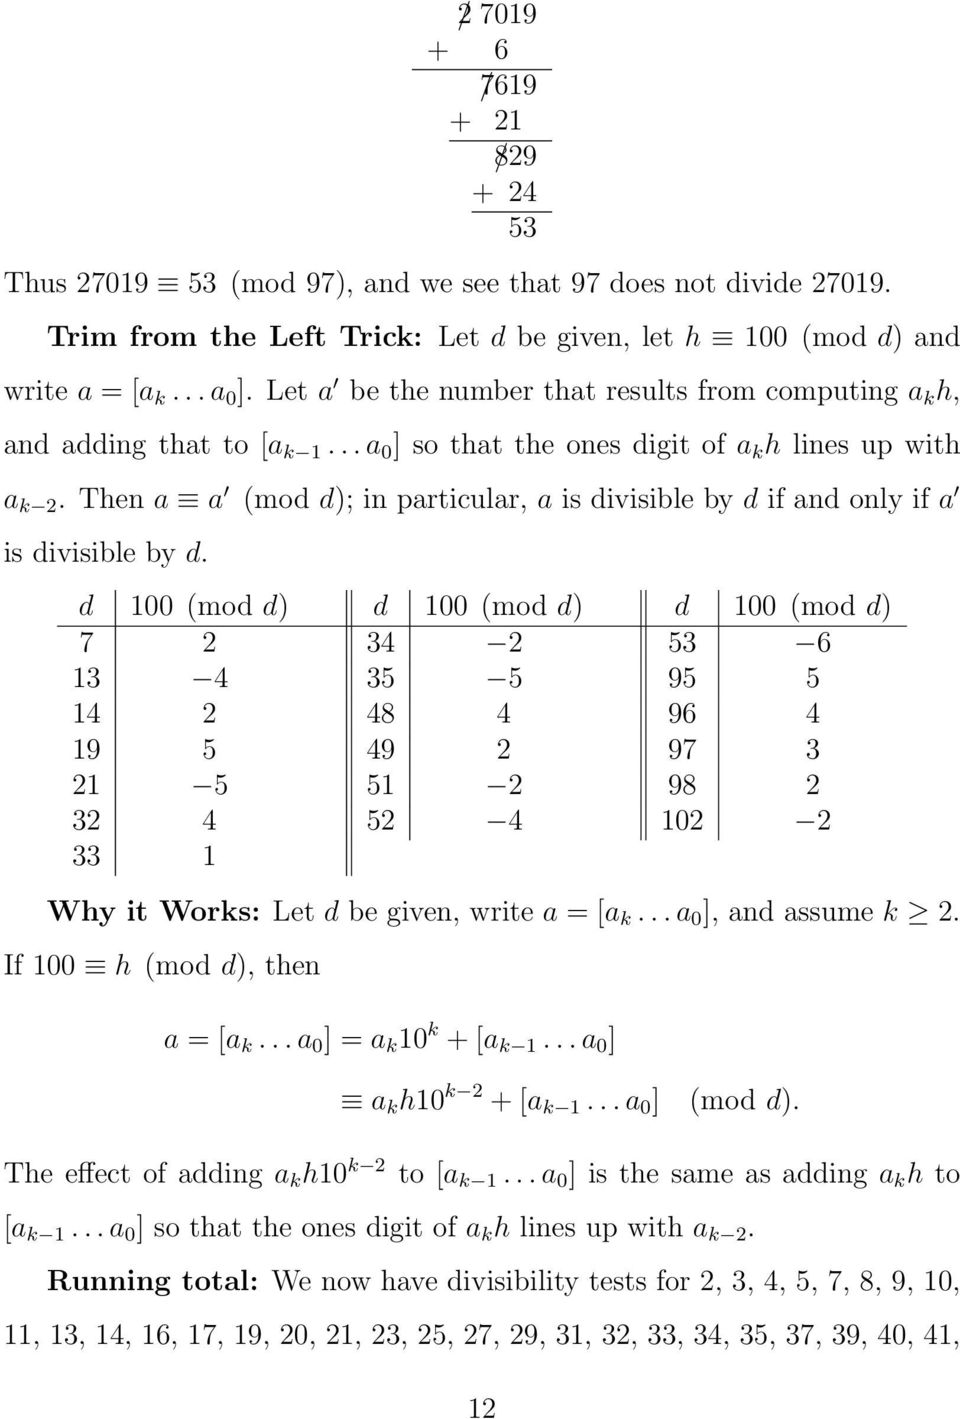 Then a a (mod d); in particular, a is divisible by d if and only if a is divisible by d.